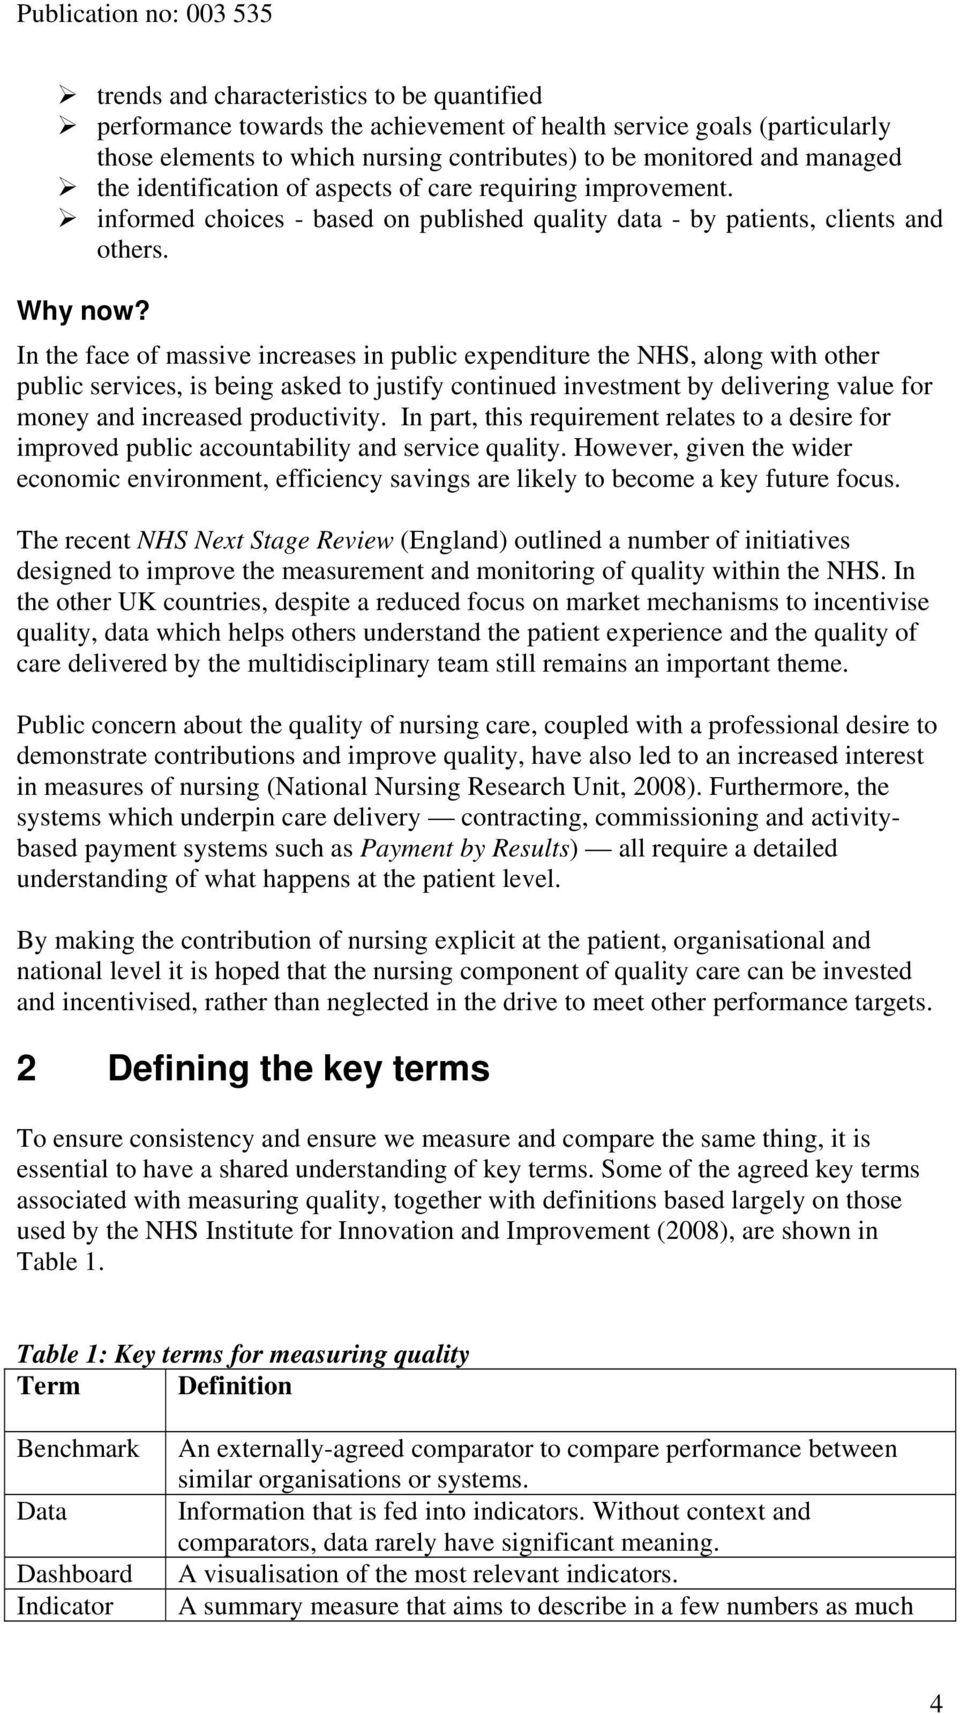 In the face of massive increases in public expenditure the NHS, along with other public services, is being asked to justify continued investment by delivering value for money and increased